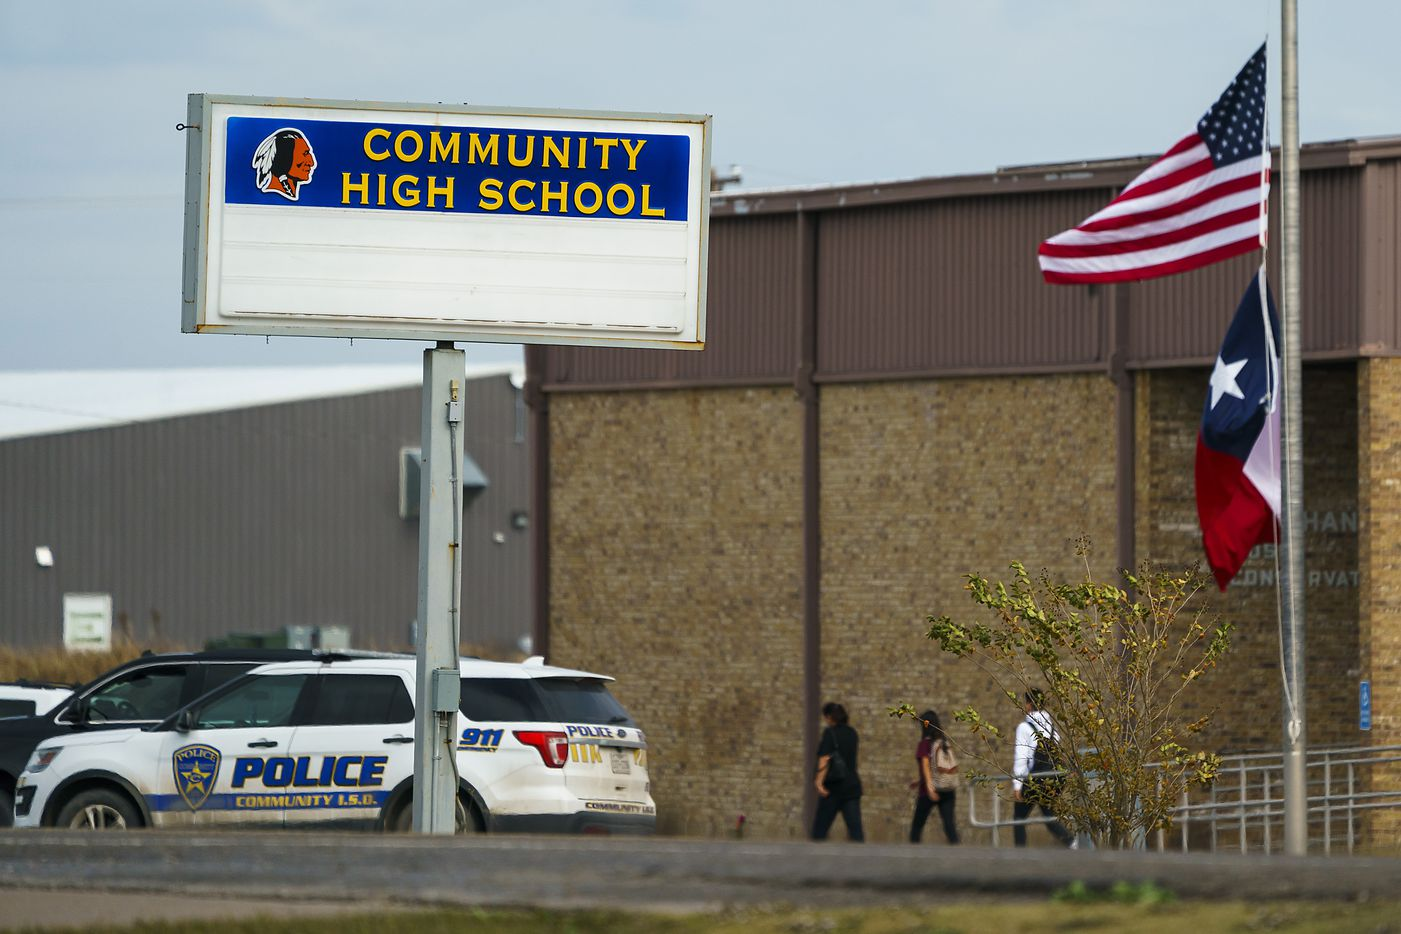 Flags fly at half staff at Community High School after four students from Community ISD in southeastern Collin County were killed in a two-vehicle crash on Wednesday, Nov. 6, 2019, in Nevada, Texas.